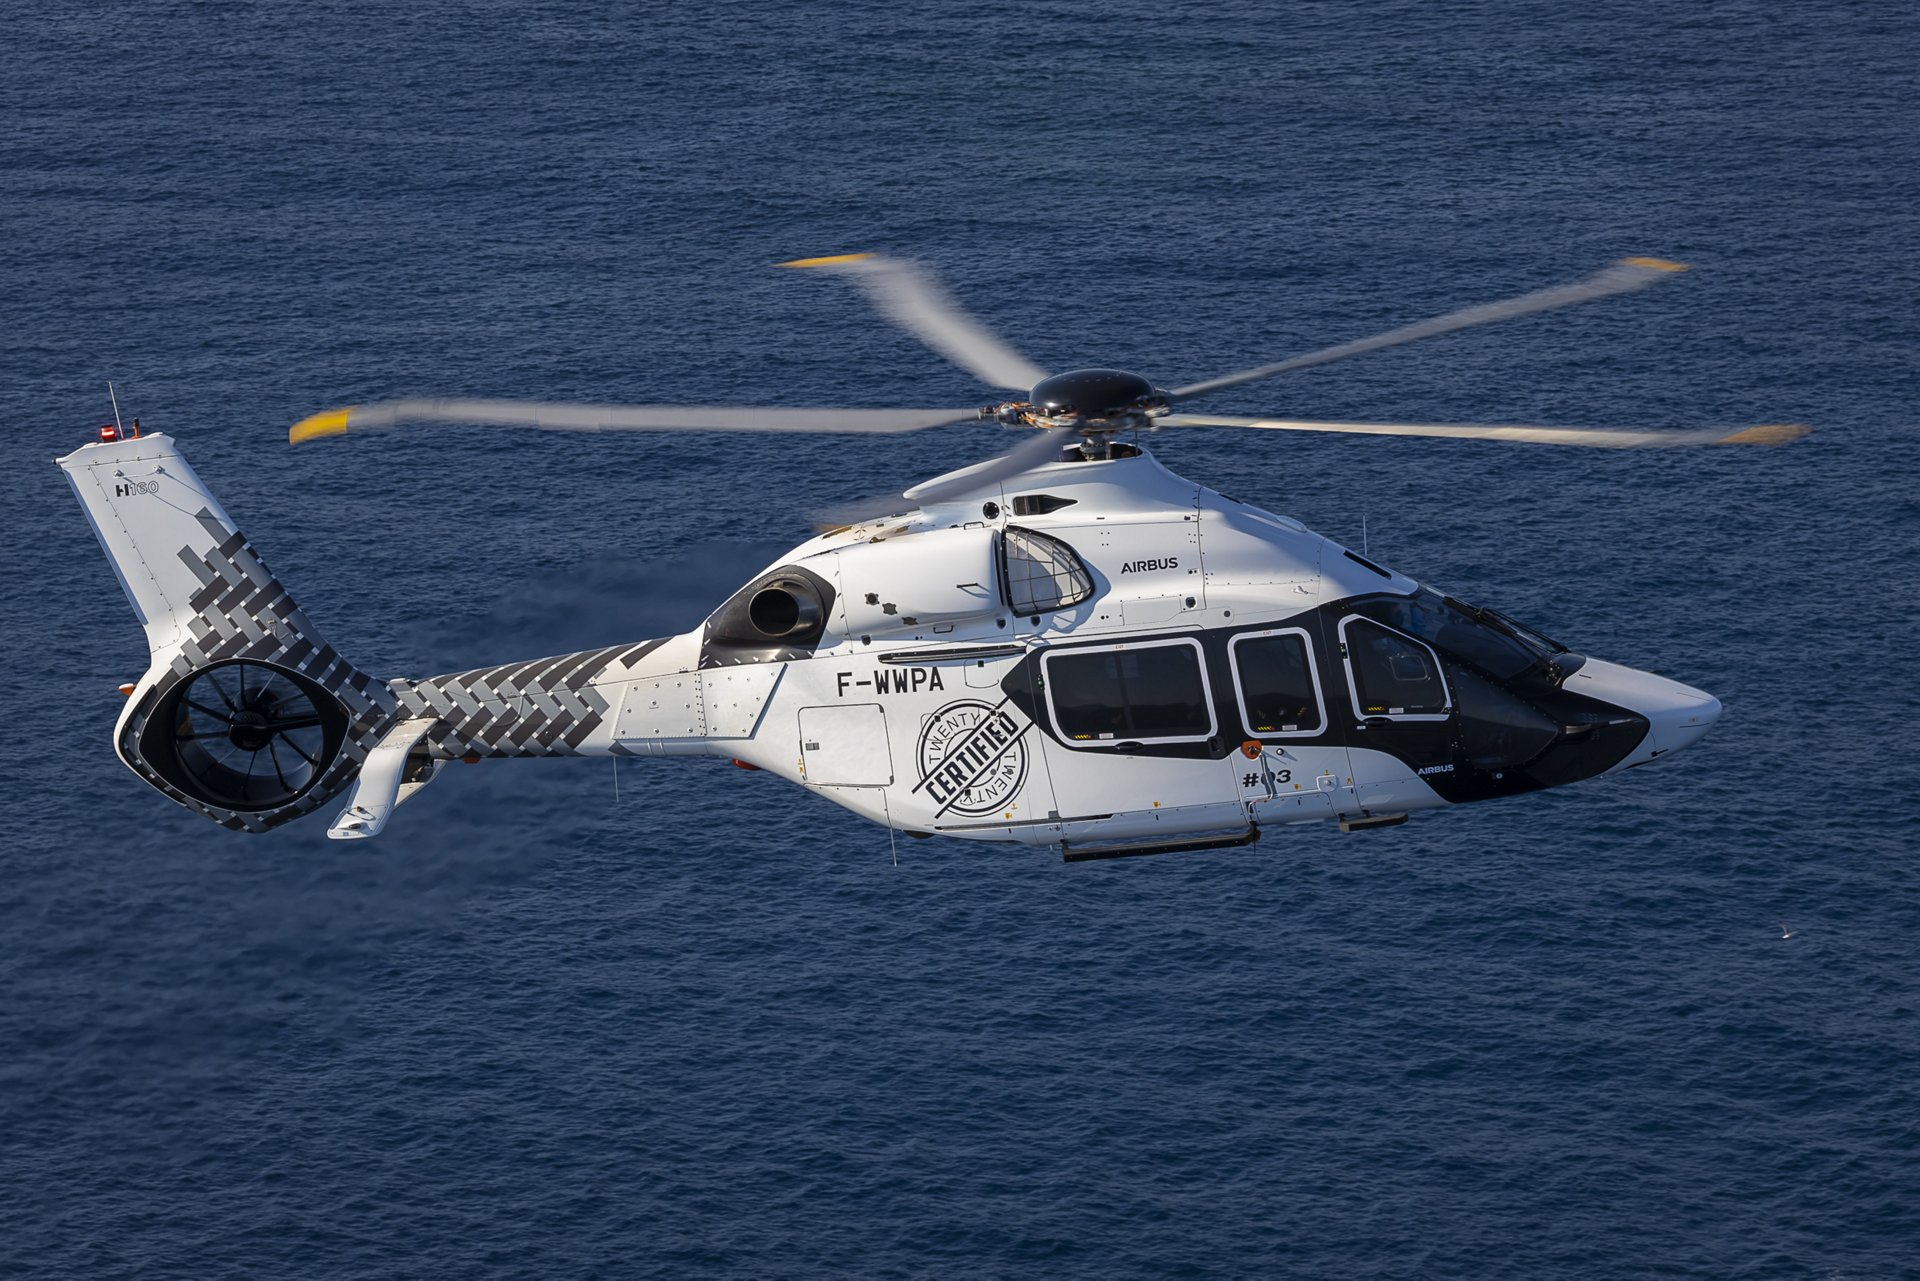 Airbus Helicopters' multi-role twin engine H160 has been granted its type certificate by the European Union Aviation Safety Agency (EASA), marking a new chapter for the programme.